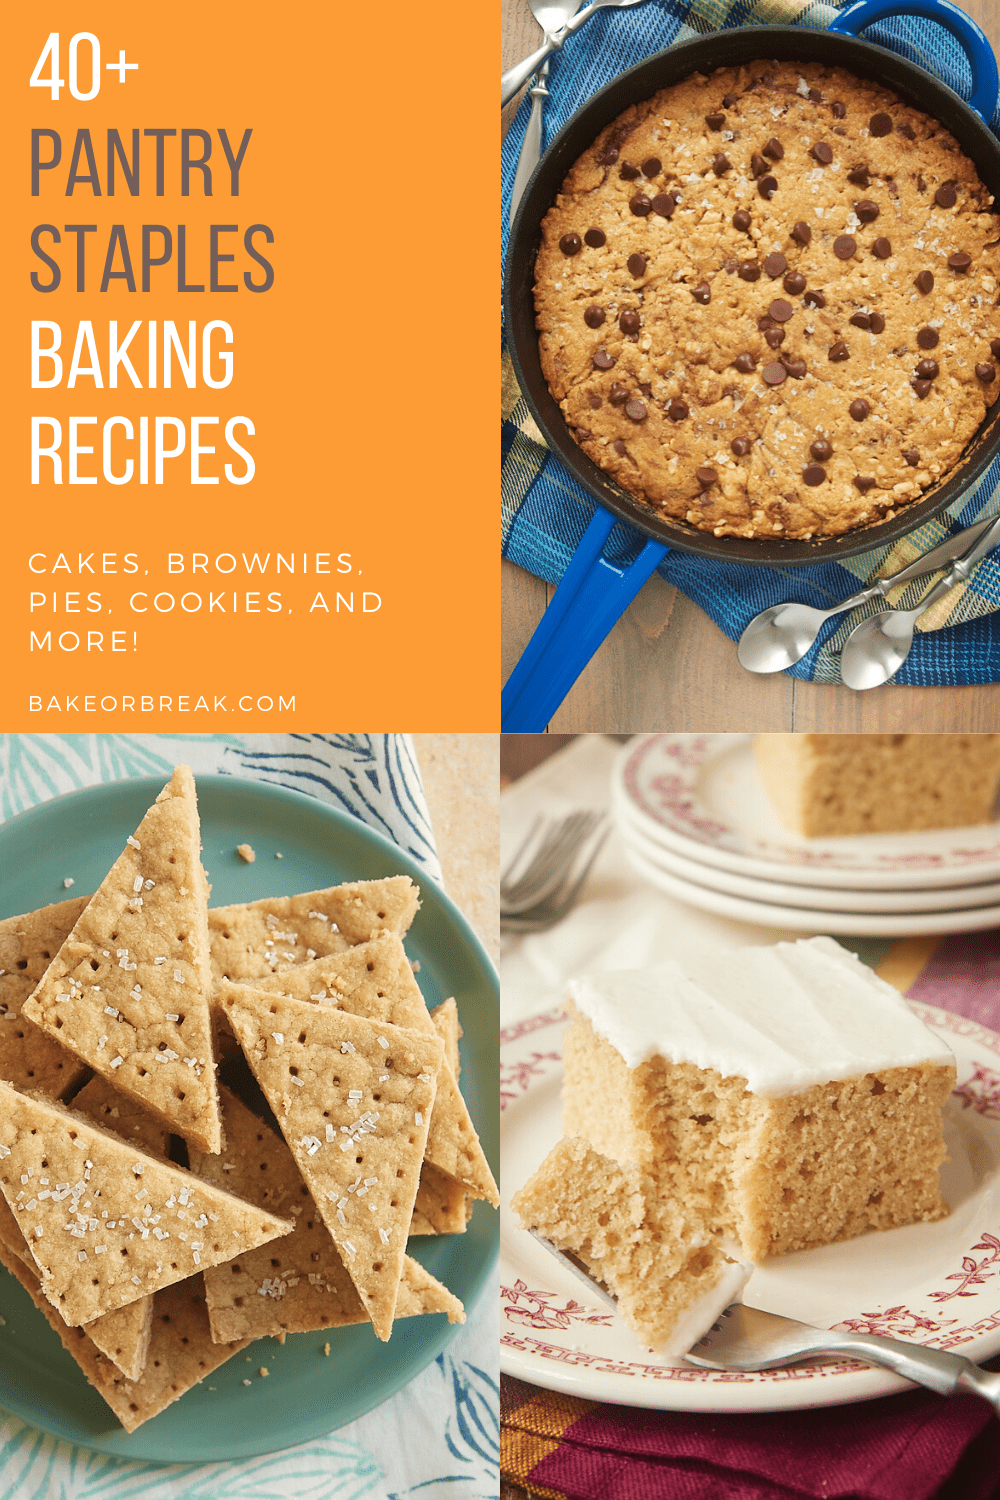 collection of over 40 baking recipes using pantry staples